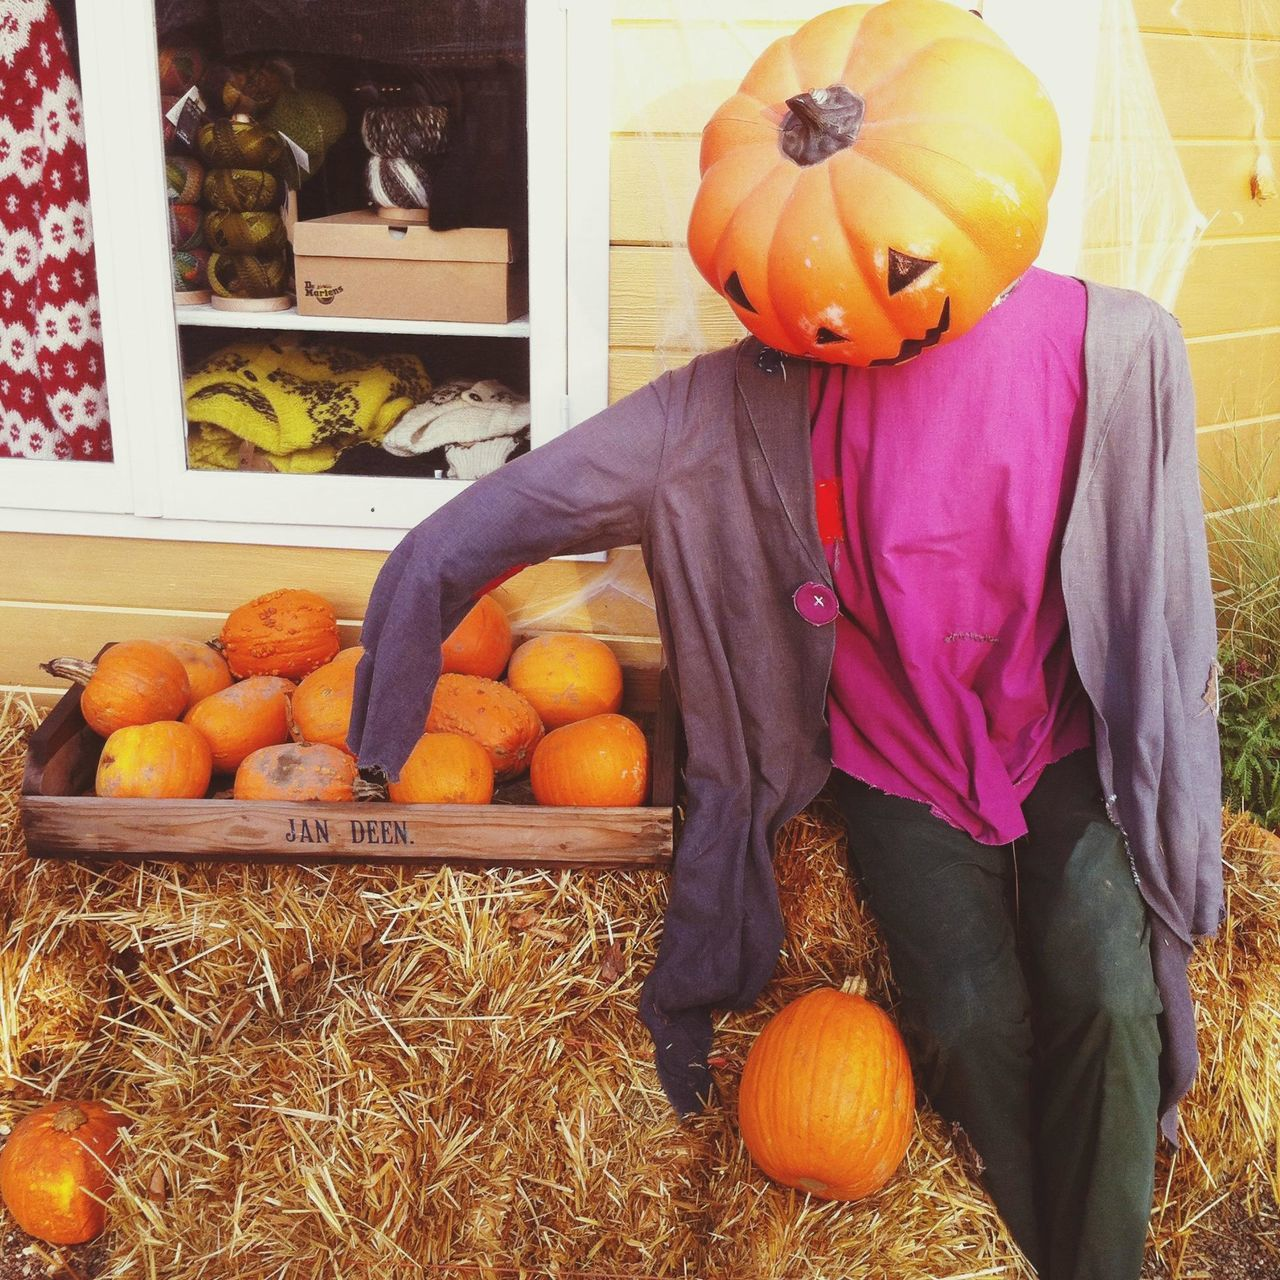 Pumpkinman chilling with its pumpkins. Halloween